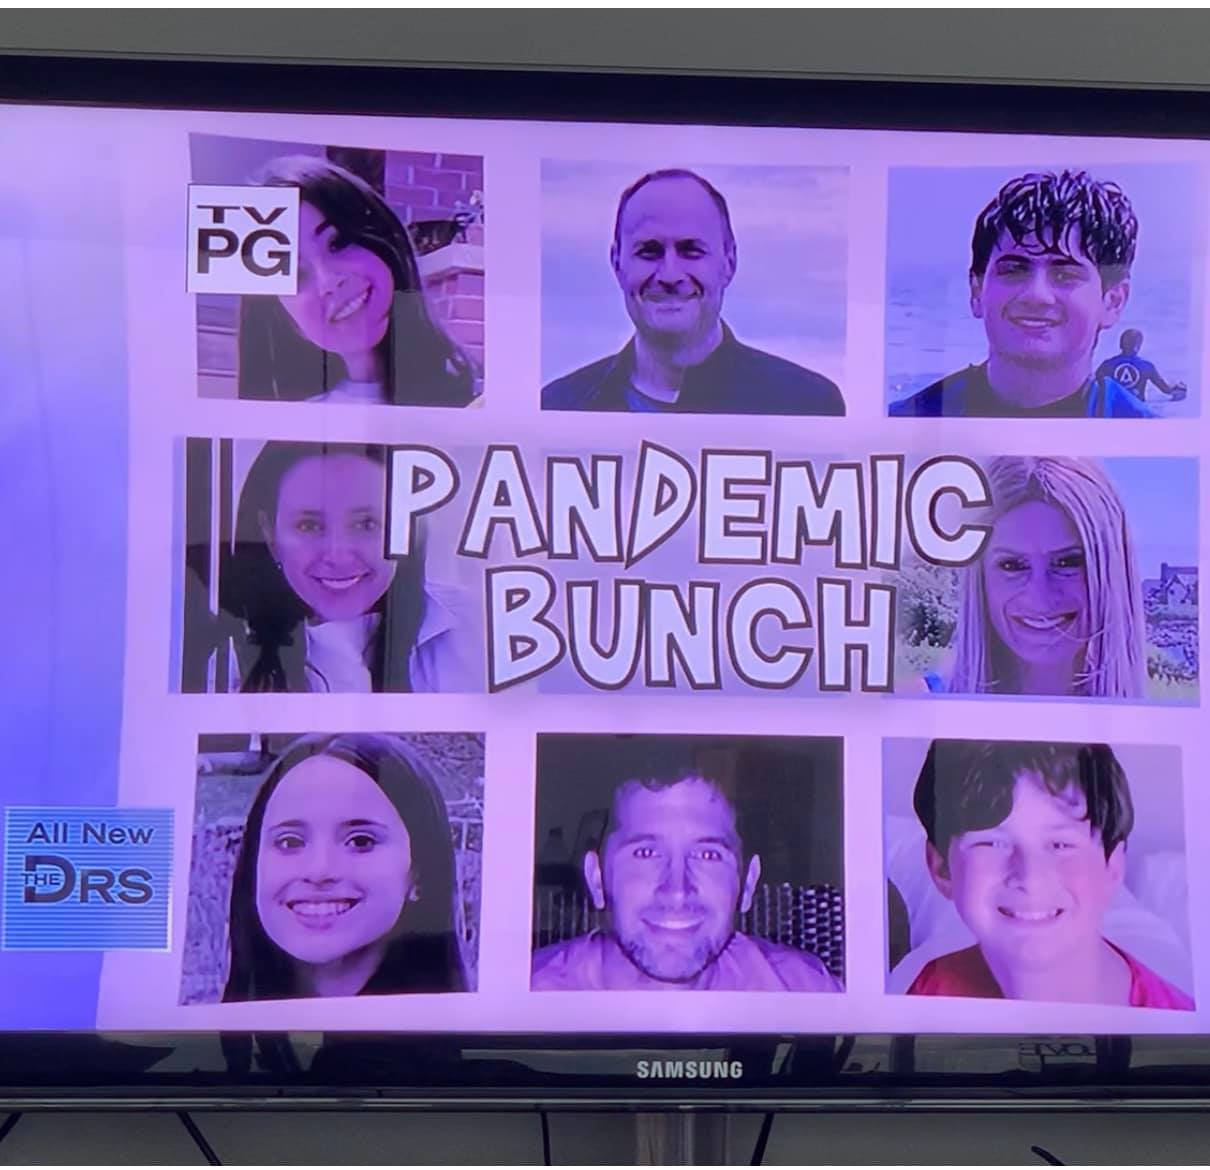 Our Pandemic Bunch